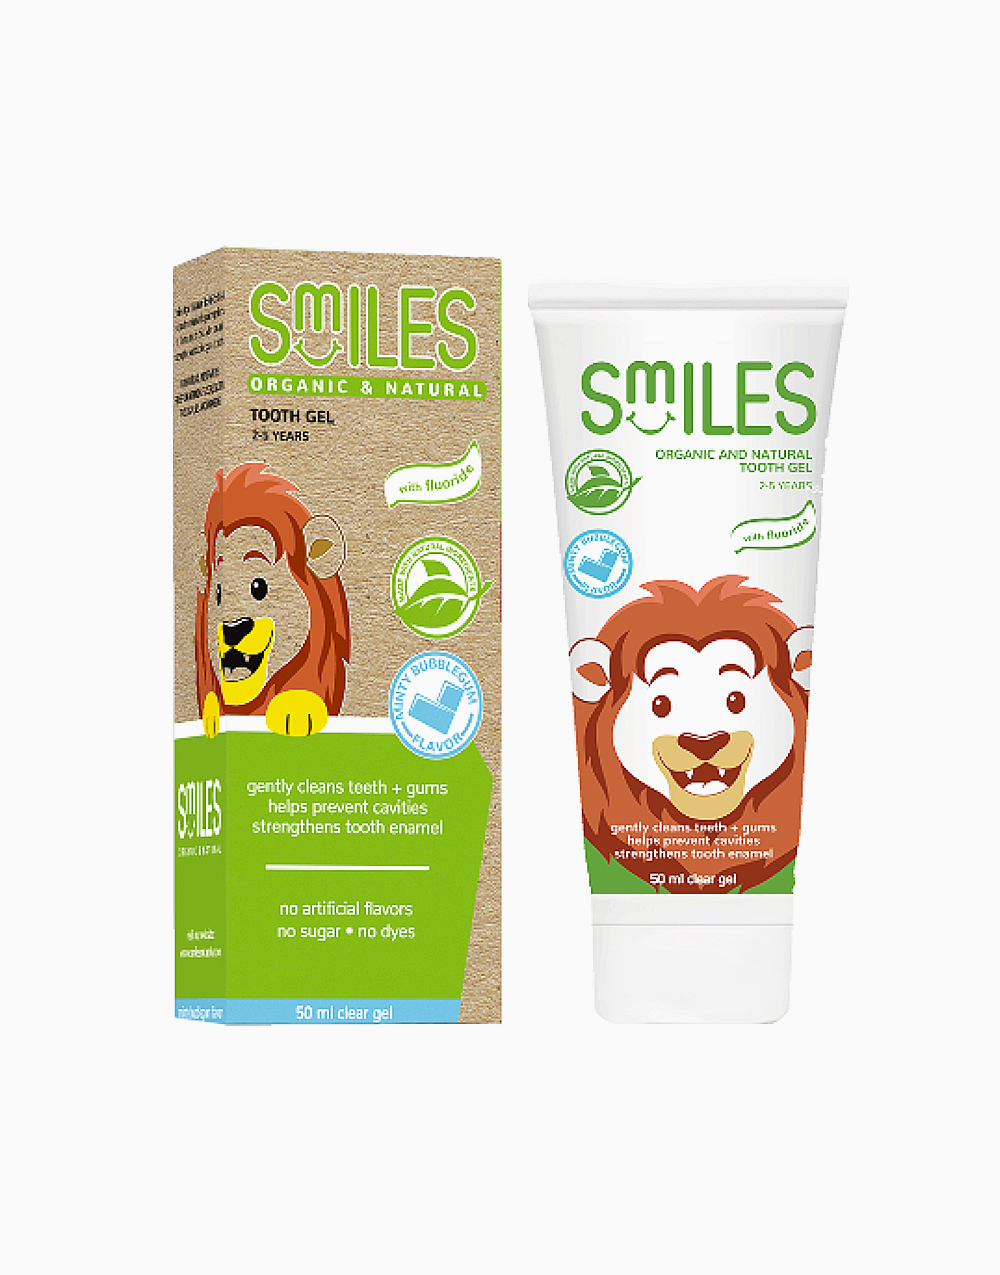 Organic Toothgel Minty Bubblegum Flavor with Flouride for 2 to 5 Yrs. Old (50ml) by Smiles